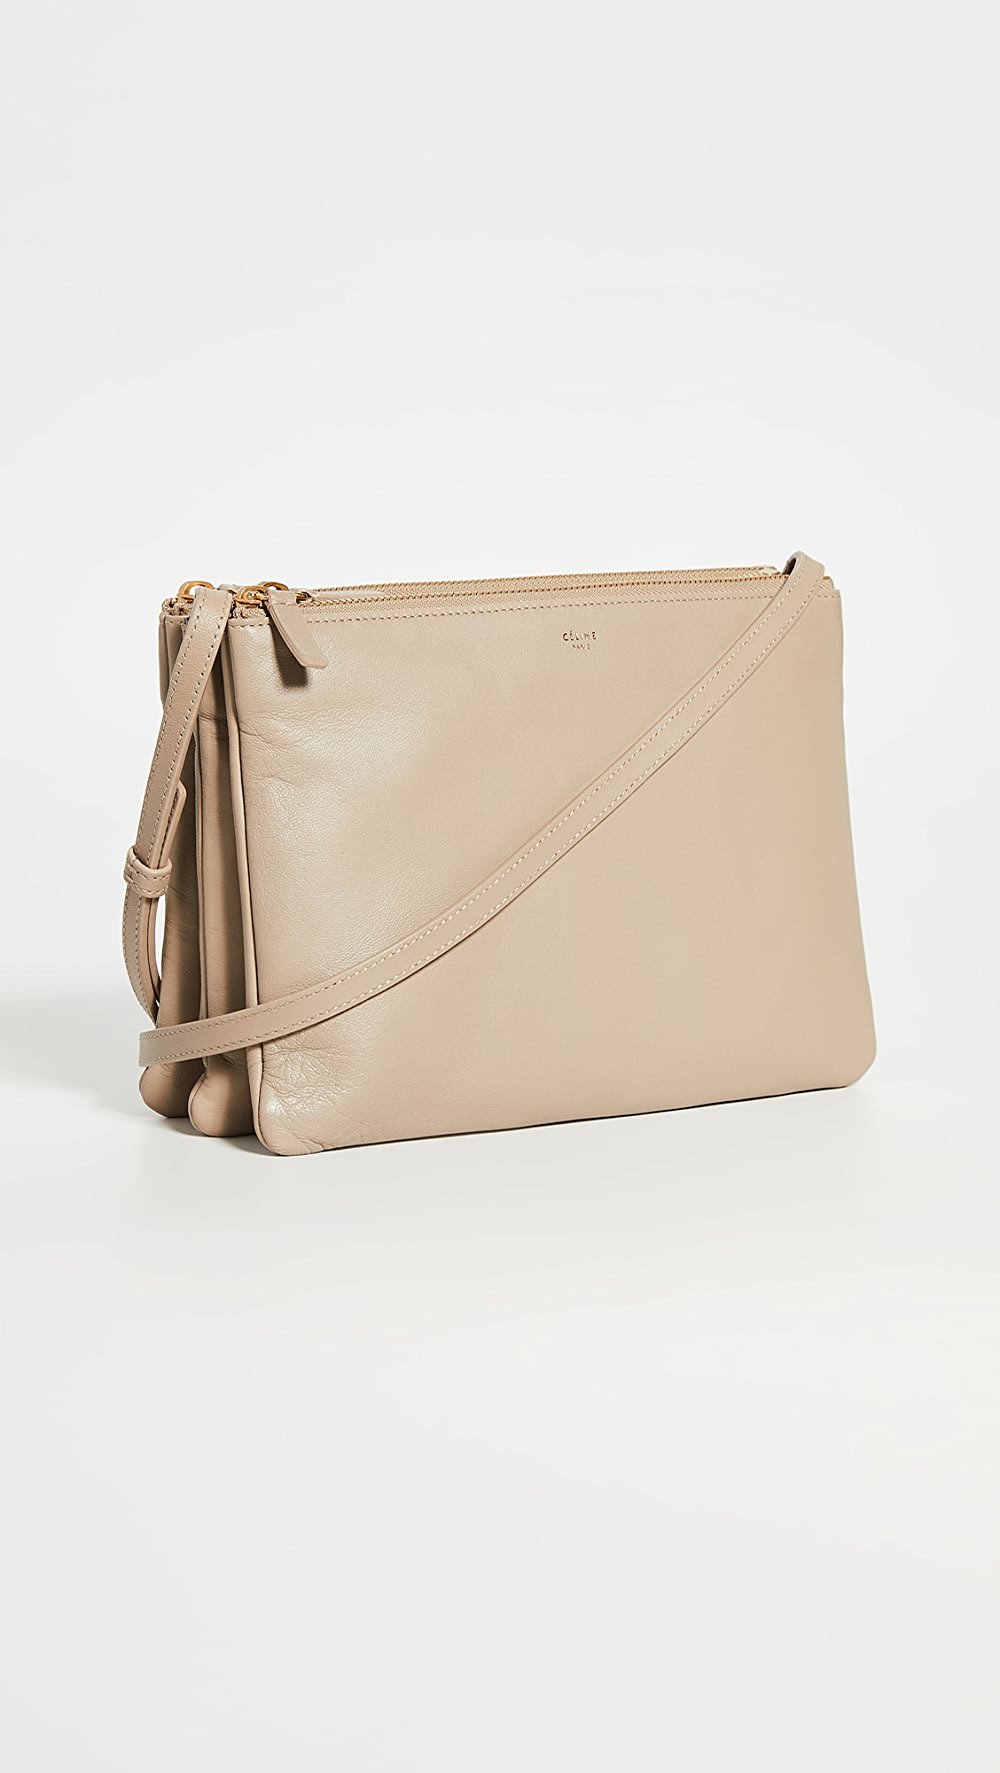 Reliable What Goes Around Comes Around - Celine Beige Trio Small Bag Yet Not Vulgar